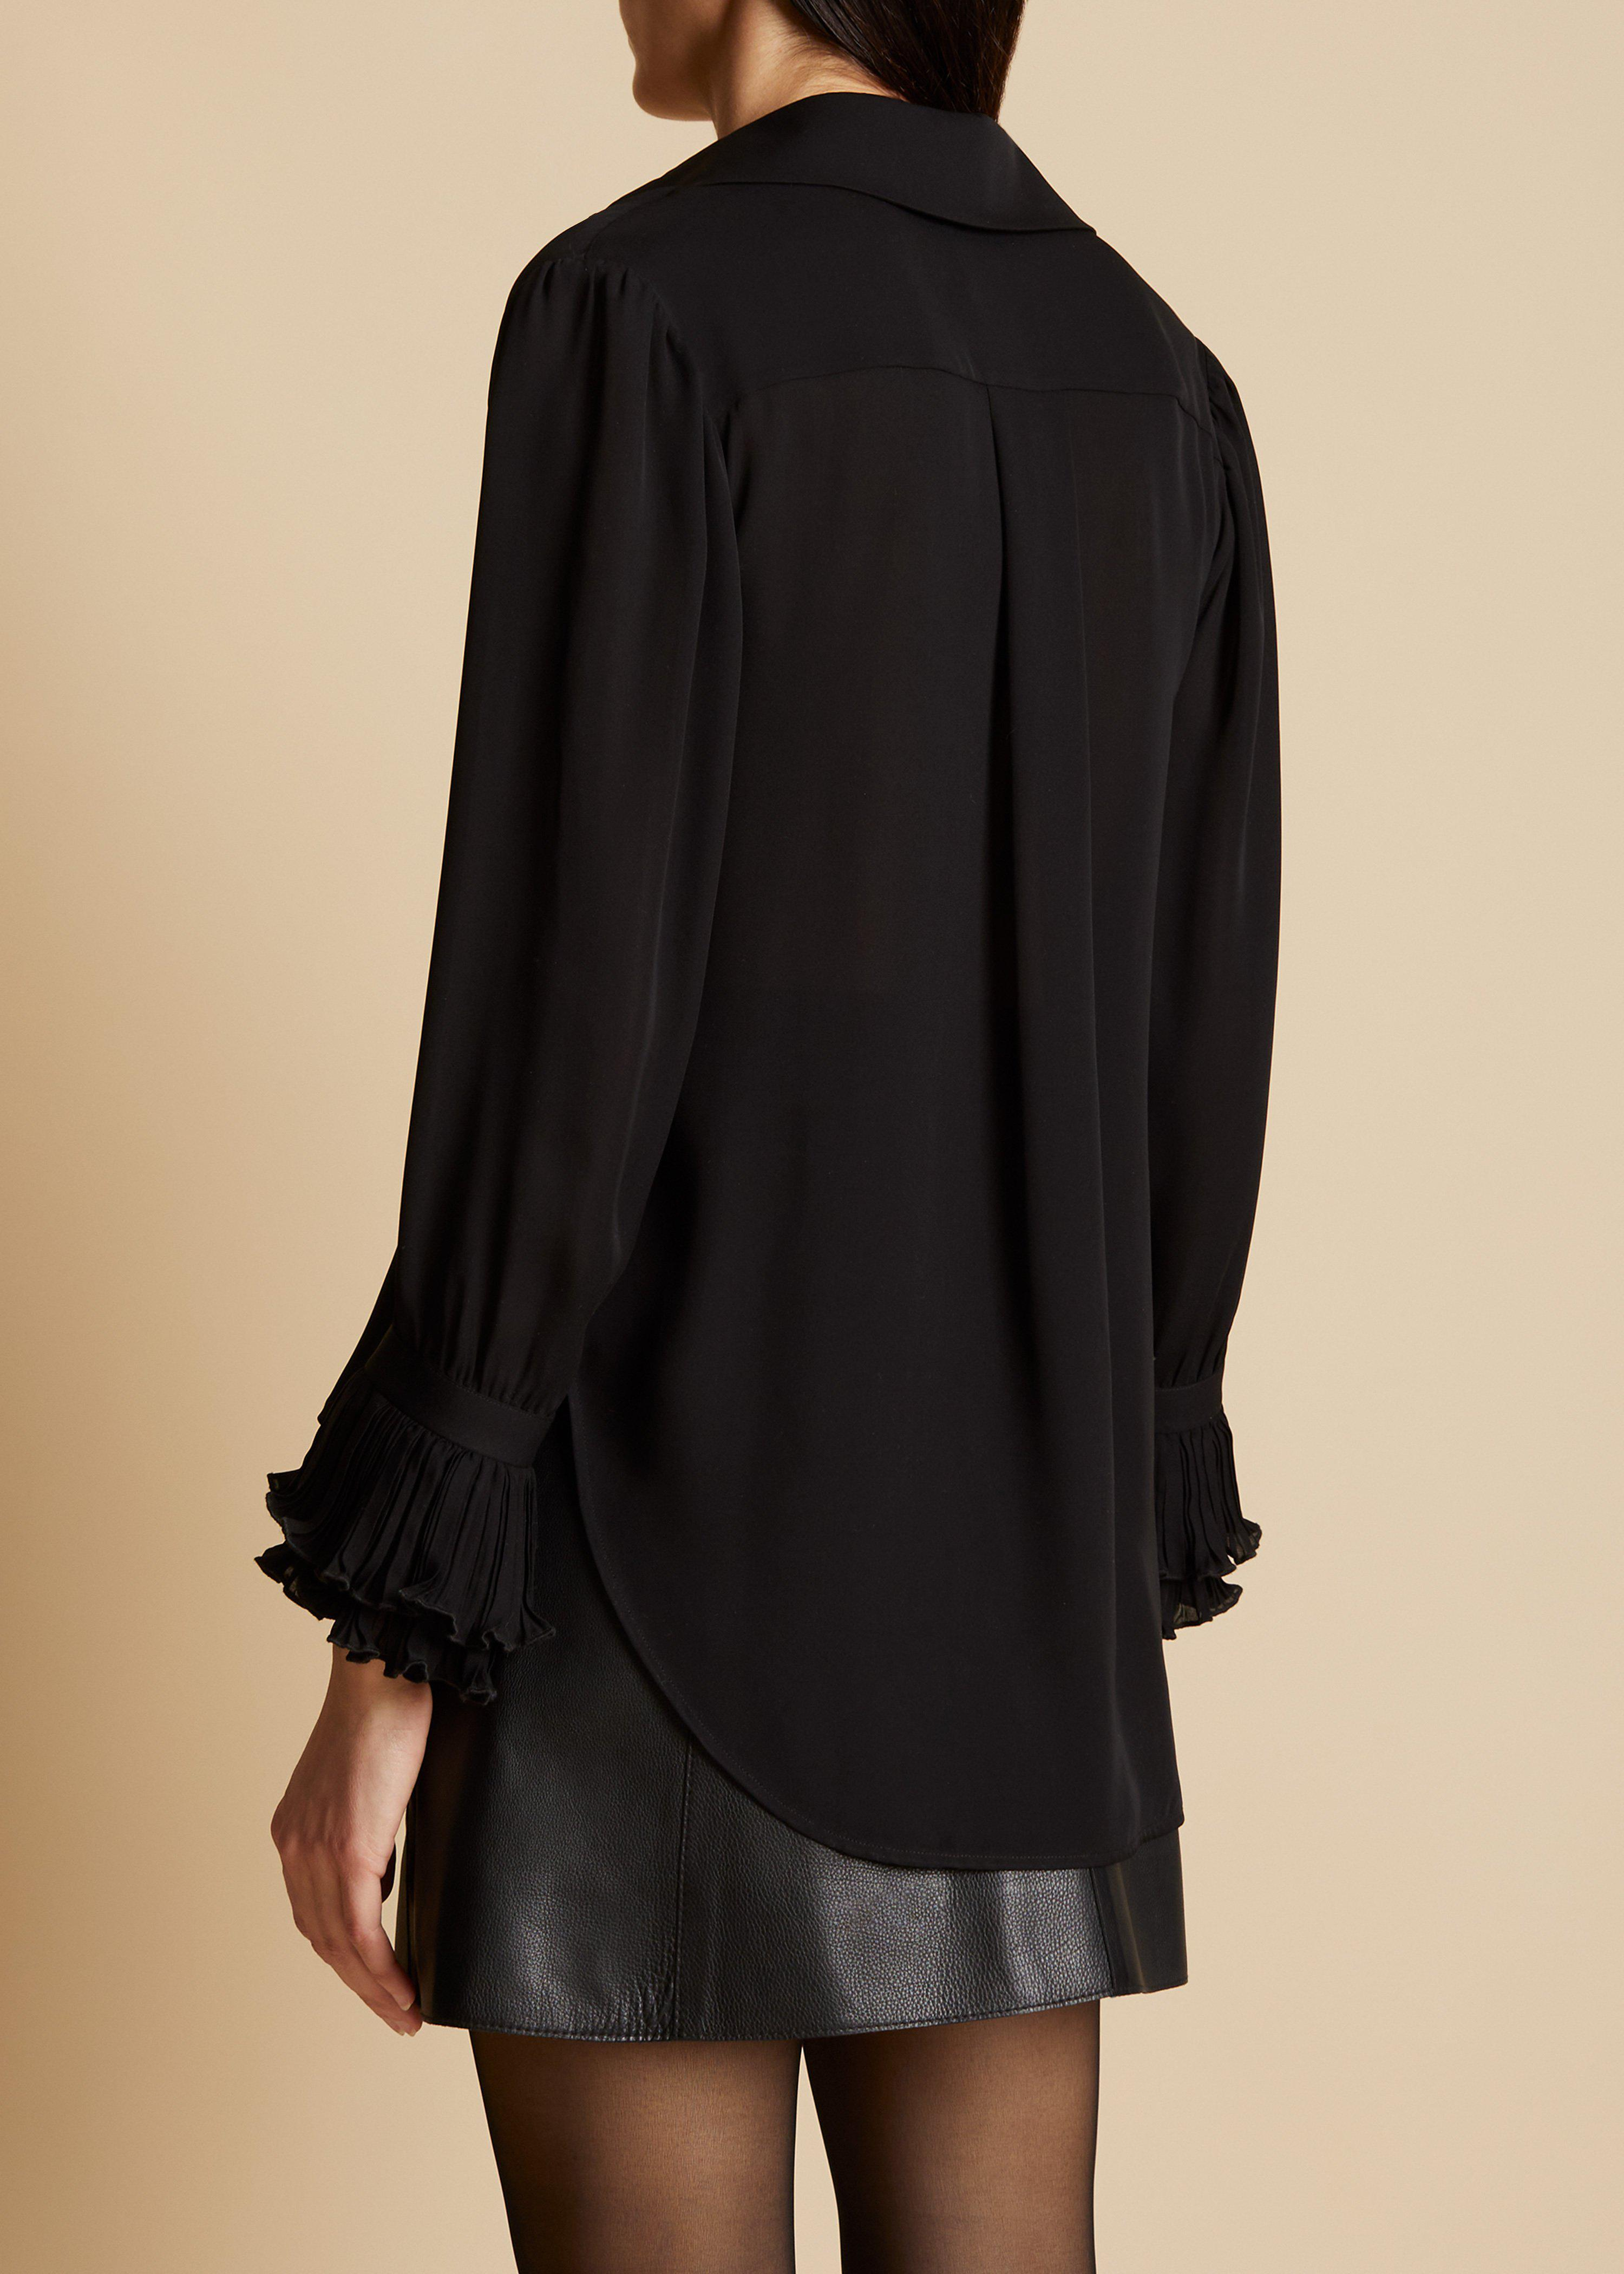 The Mary Top in Black 2